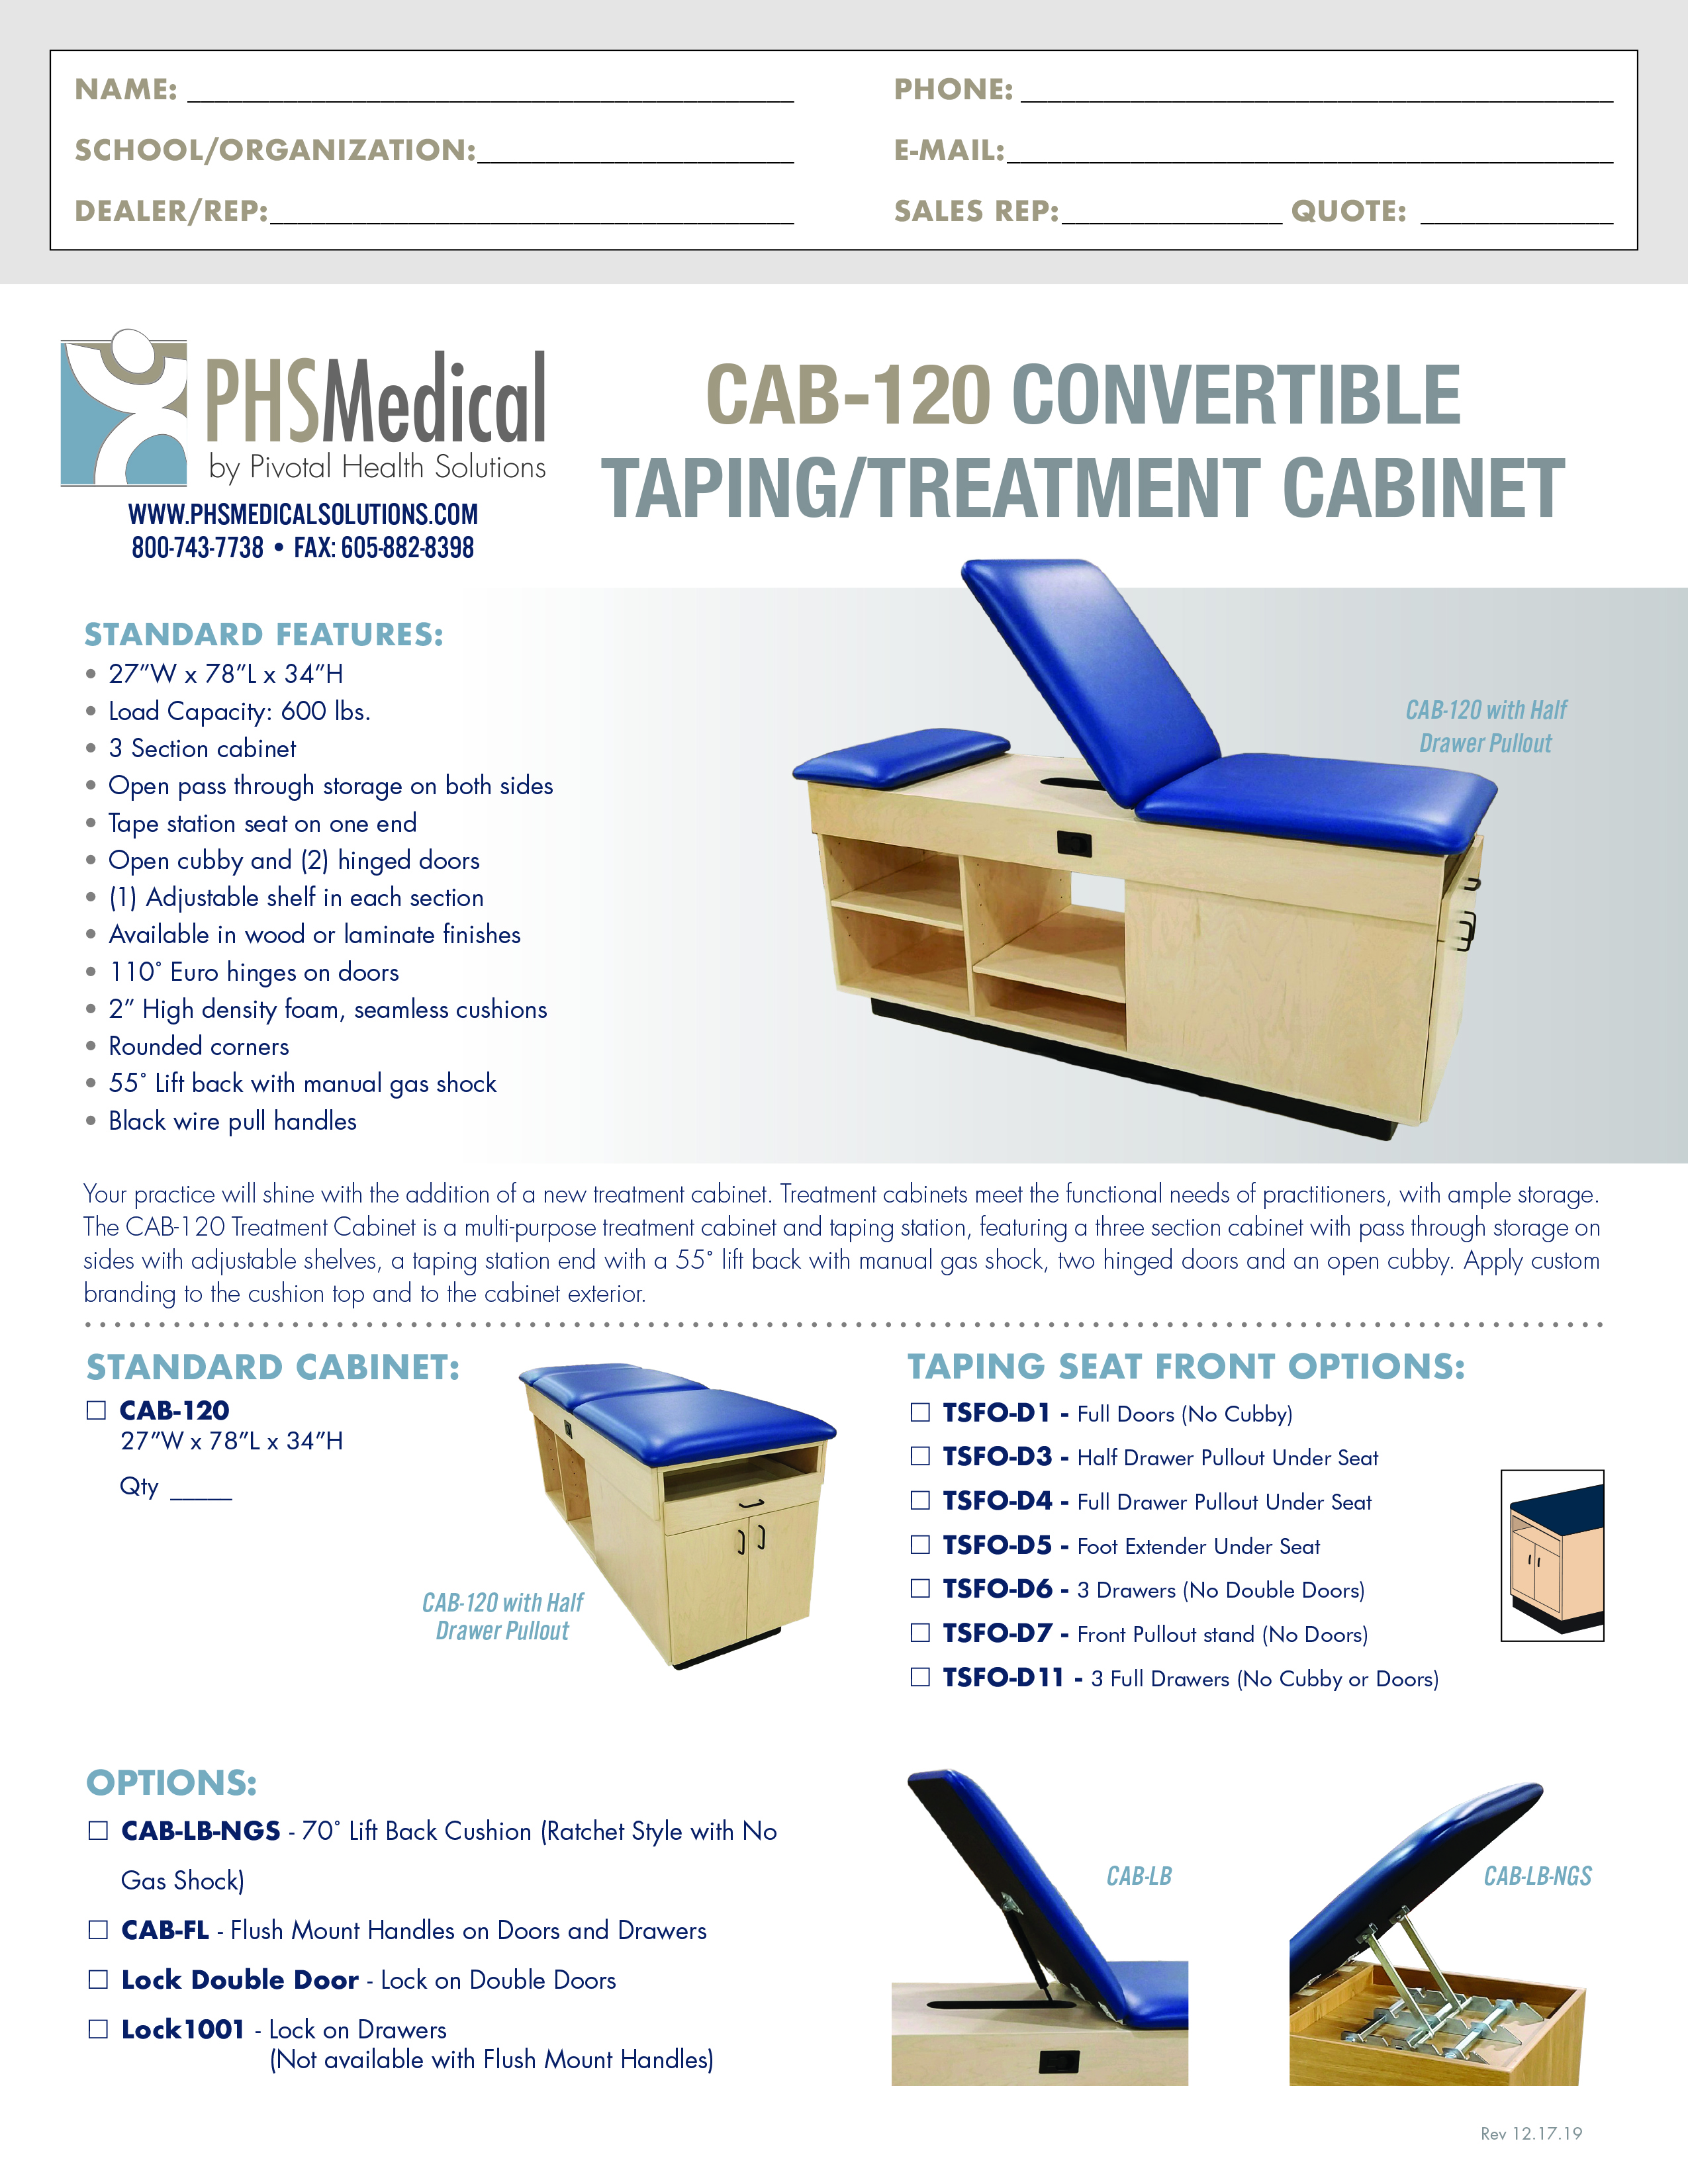 CAB-120 Convertible Taping/Treatment Cabinet Data Sheet